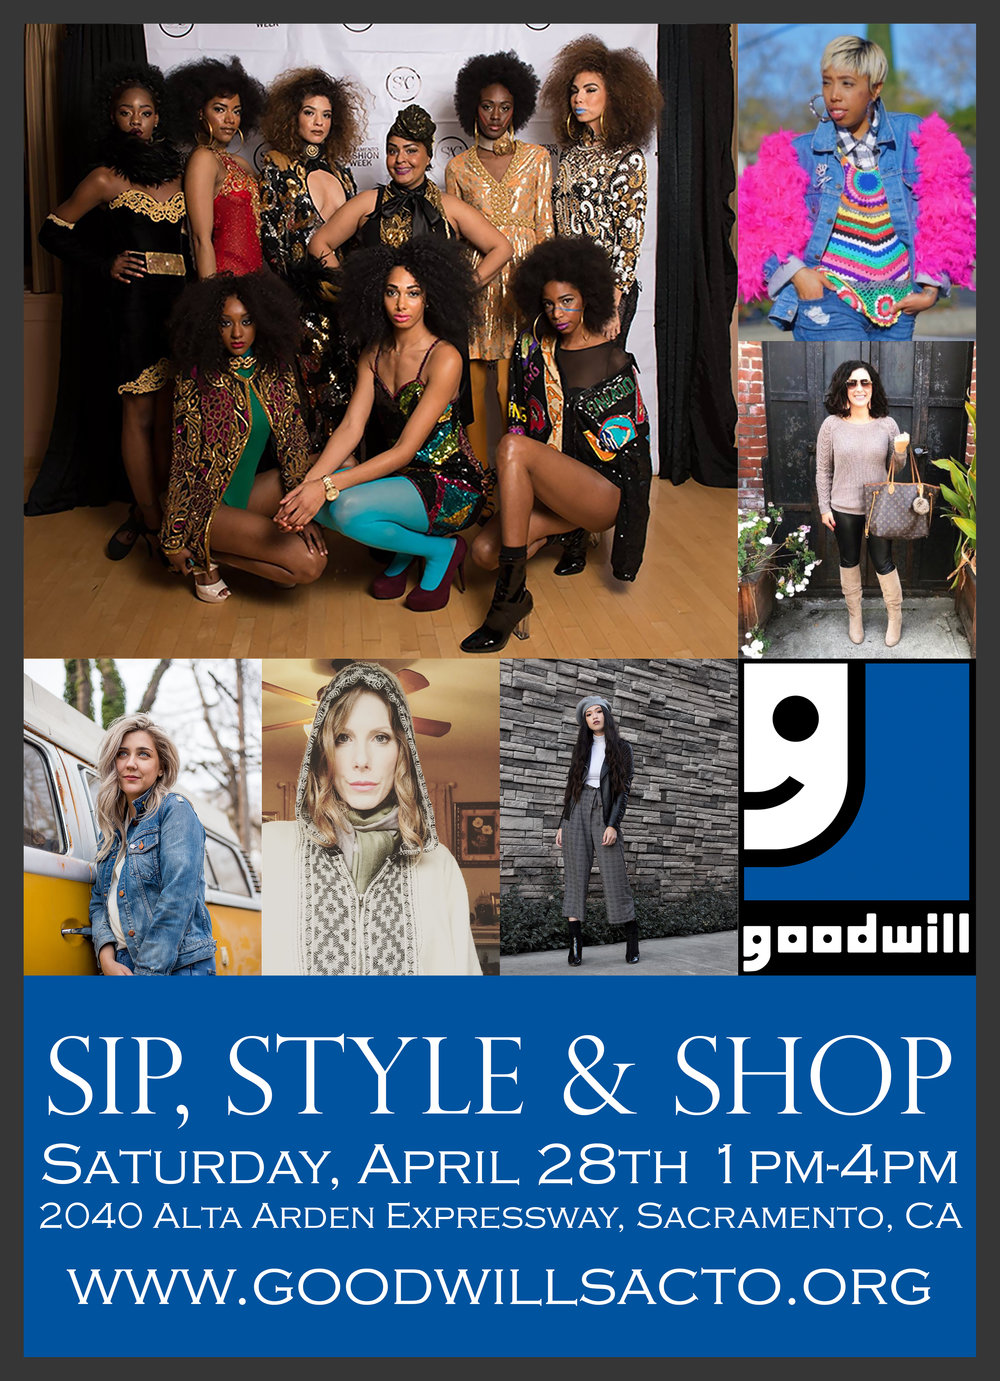 Sip, Style & Shop - This Spring our Co- Founder Keia Mae will partner with her local Goodwill stores and 5 other fabulous fashionistas to host an event Sip, Style & Shop.The event will be held at the Alta Arden Goodwill Location in Sacramento, CA. The participating stylist will represent many aspects of the fashion community: Bloggers, Stylist and Artist, who all have a general love for thrifting. Goodwill values these lovely ladies support of Goodwills mission as well as their thrifting expertise to promote eco-fashion style and be on hand to give advice to the Goodwill shopper, making fashion accessible to everyone and to break the stigma associated with thrifting. This is a free event and open to everyone, men, women and kids.Where: Goodwill Alta ArdenWhen: 4/28/18Time: 1-4